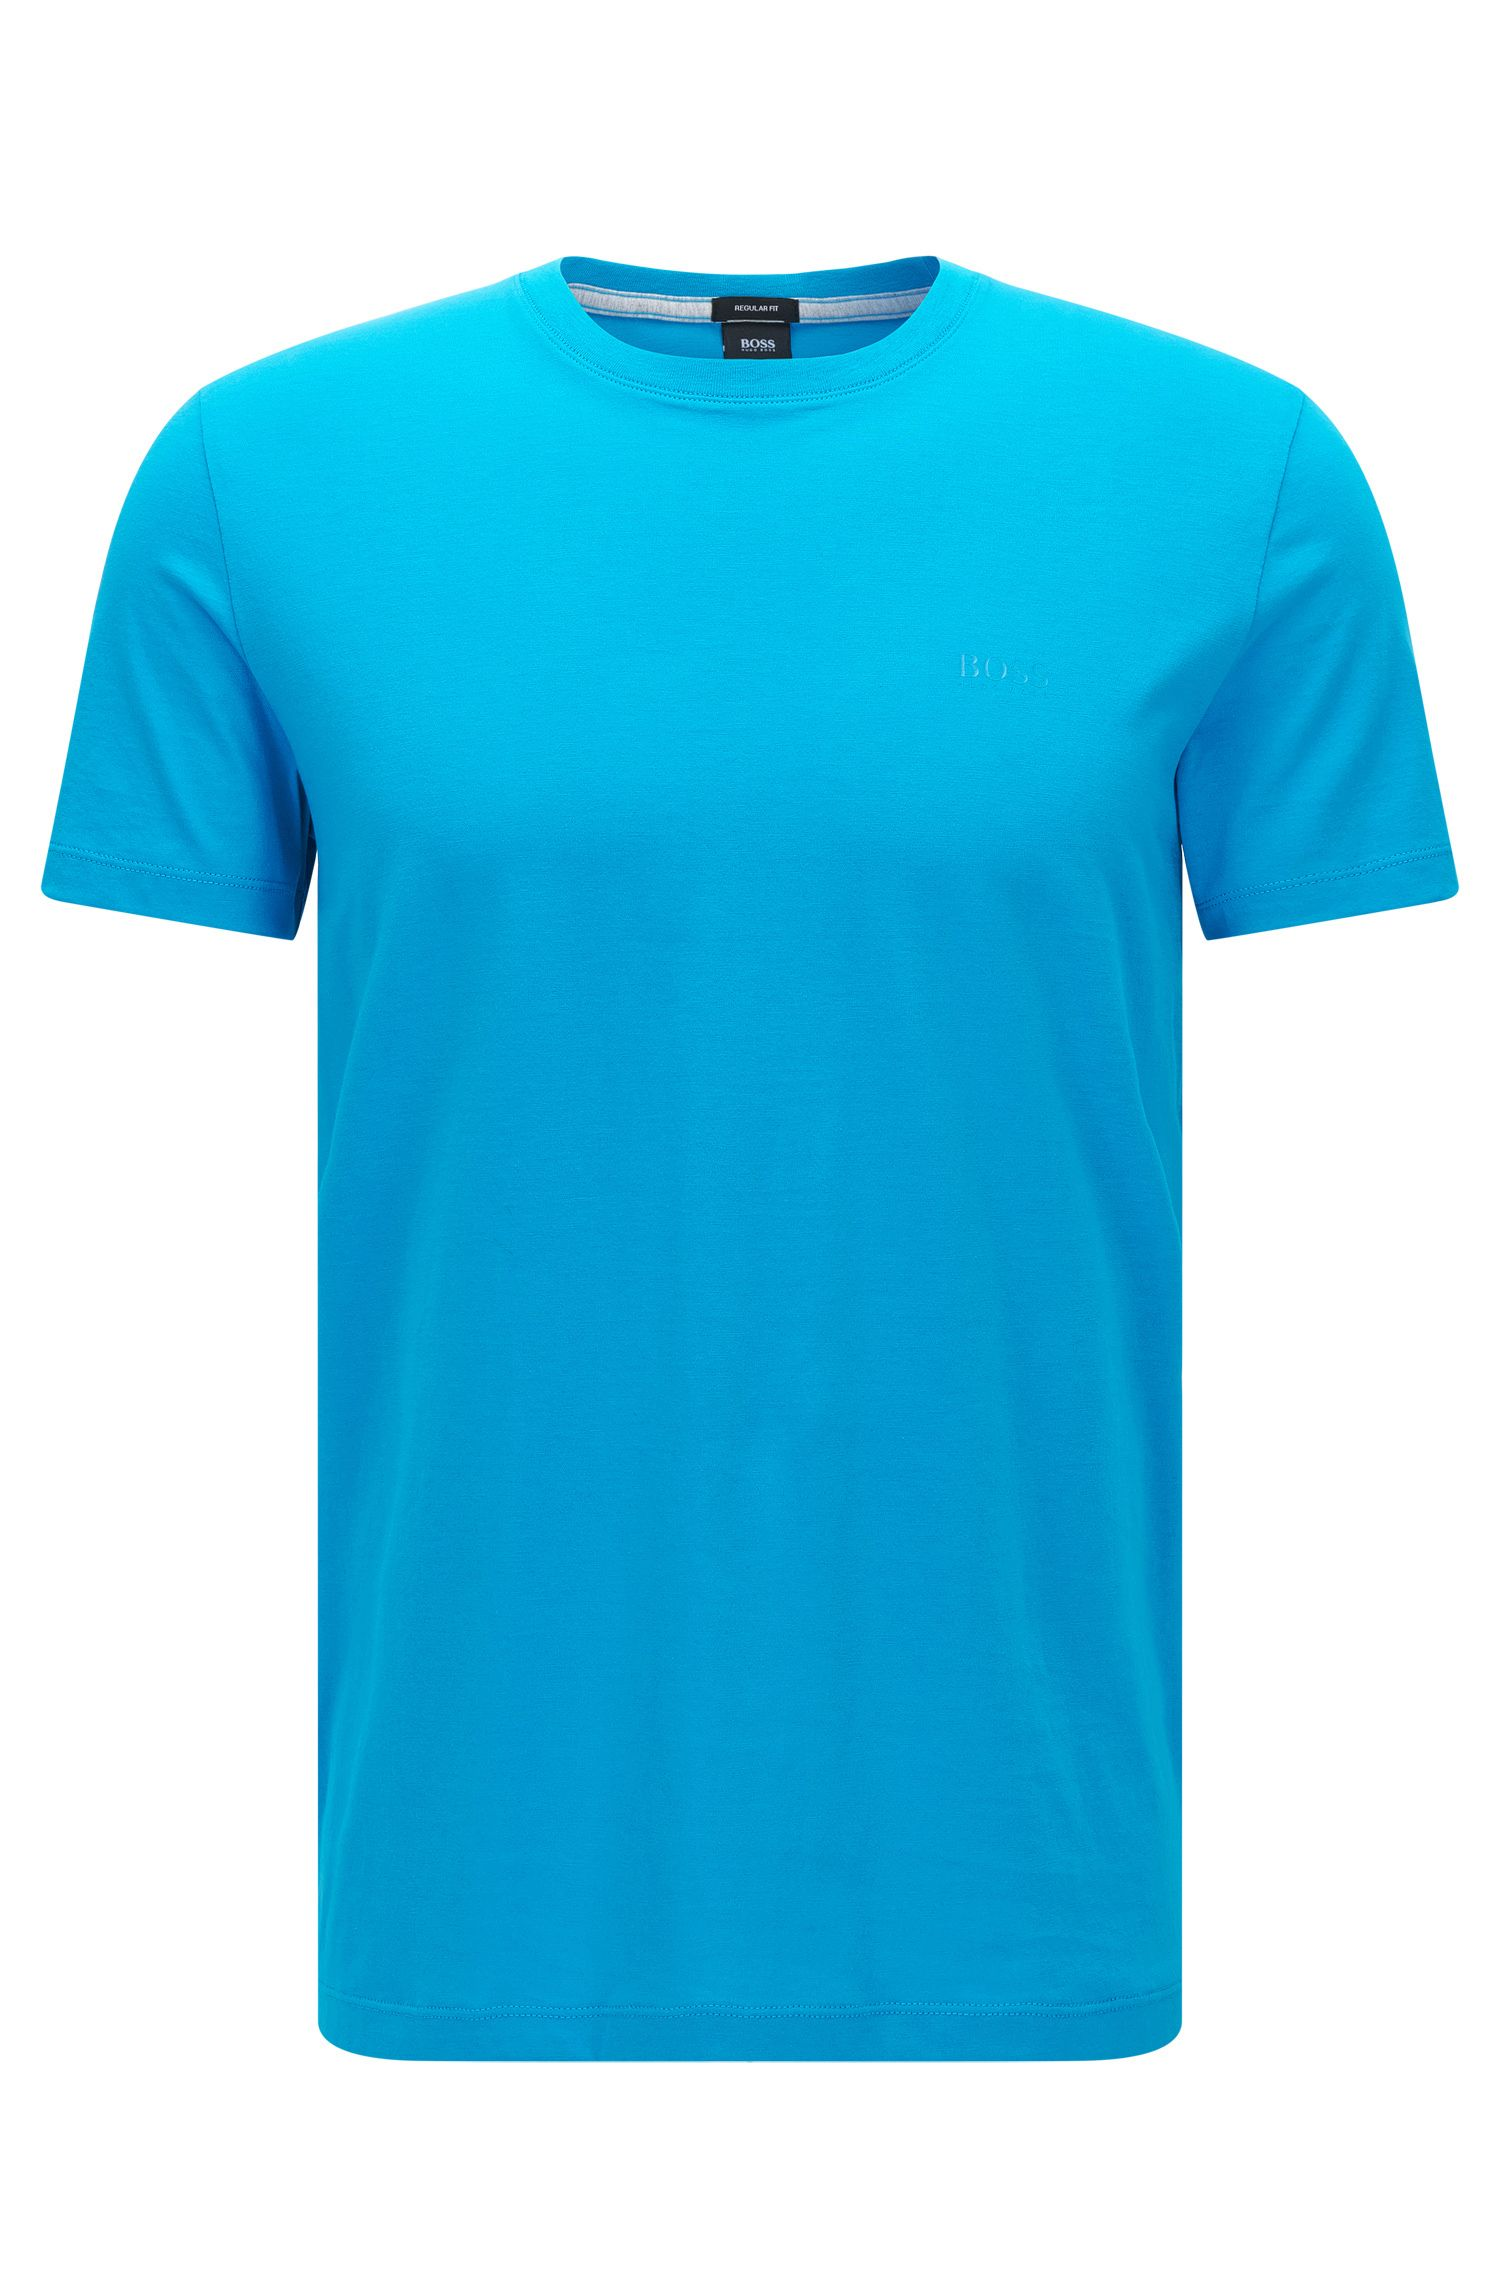 Camiseta regular fit en algodón suave